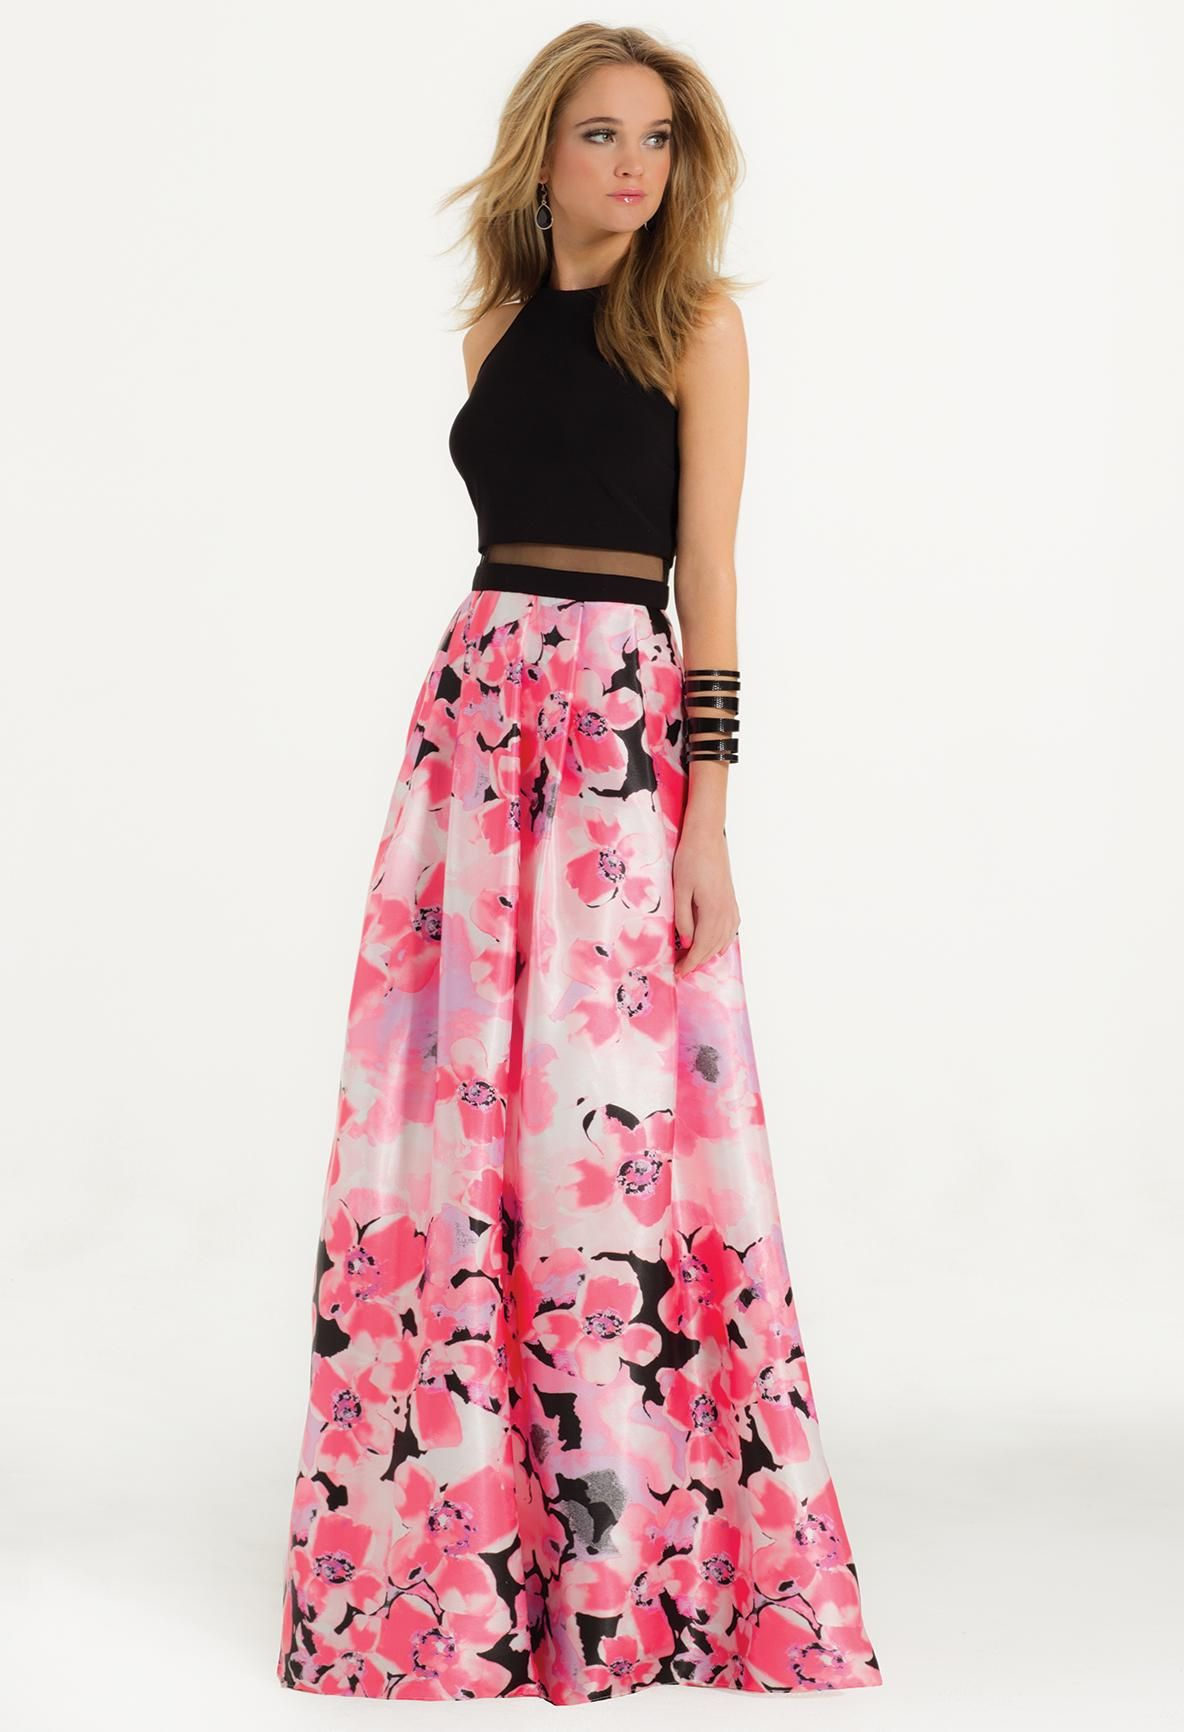 Floral Print Prom Dress for Prom 2016 #camillelavie #CLVprom | PROM ...